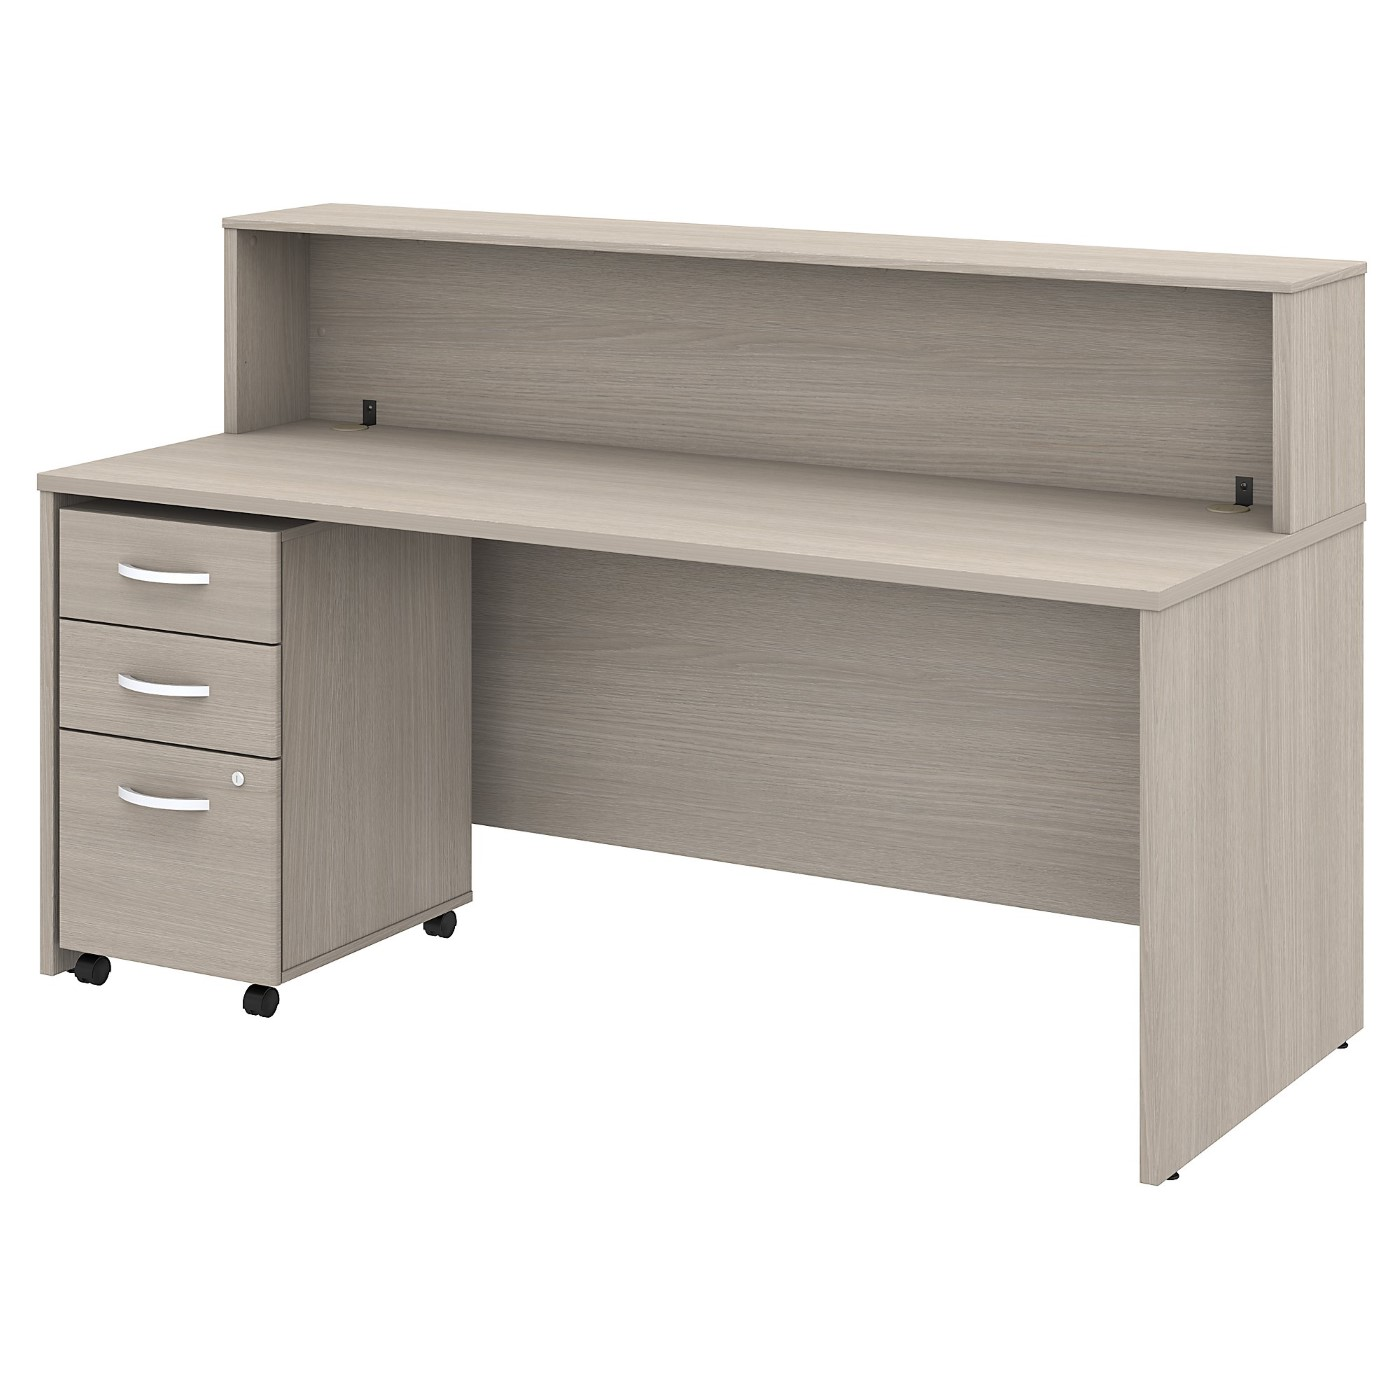 BUSH BUSINESS FURNITURE STUDIO C 72W RECEPTION DESK WITH SHELF AND MOBILE FILE CABINET. FREE SHIPPING